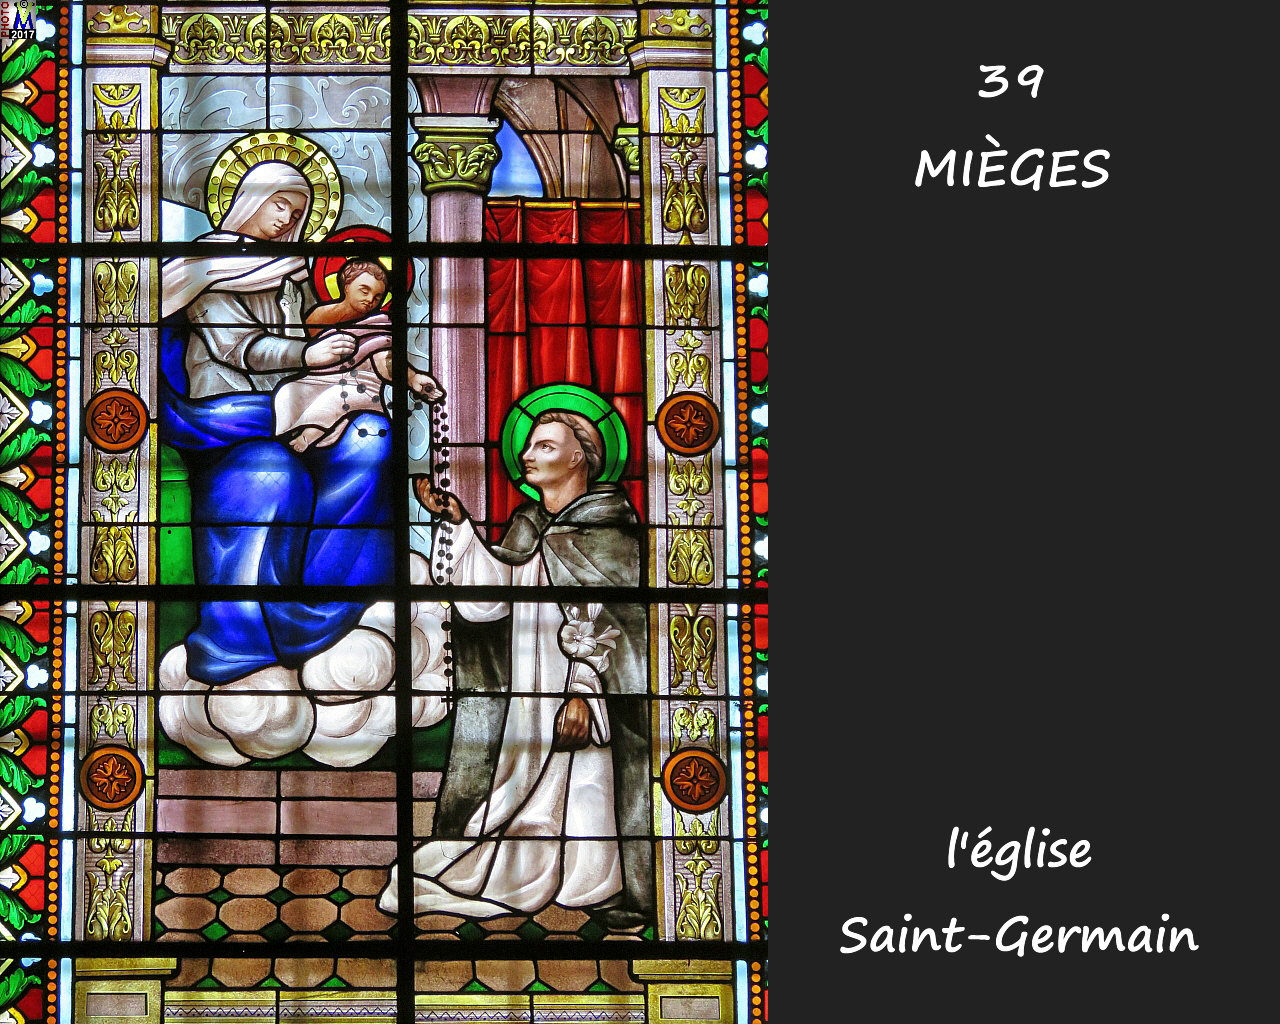 39MIEGES_eglise_236.jpg